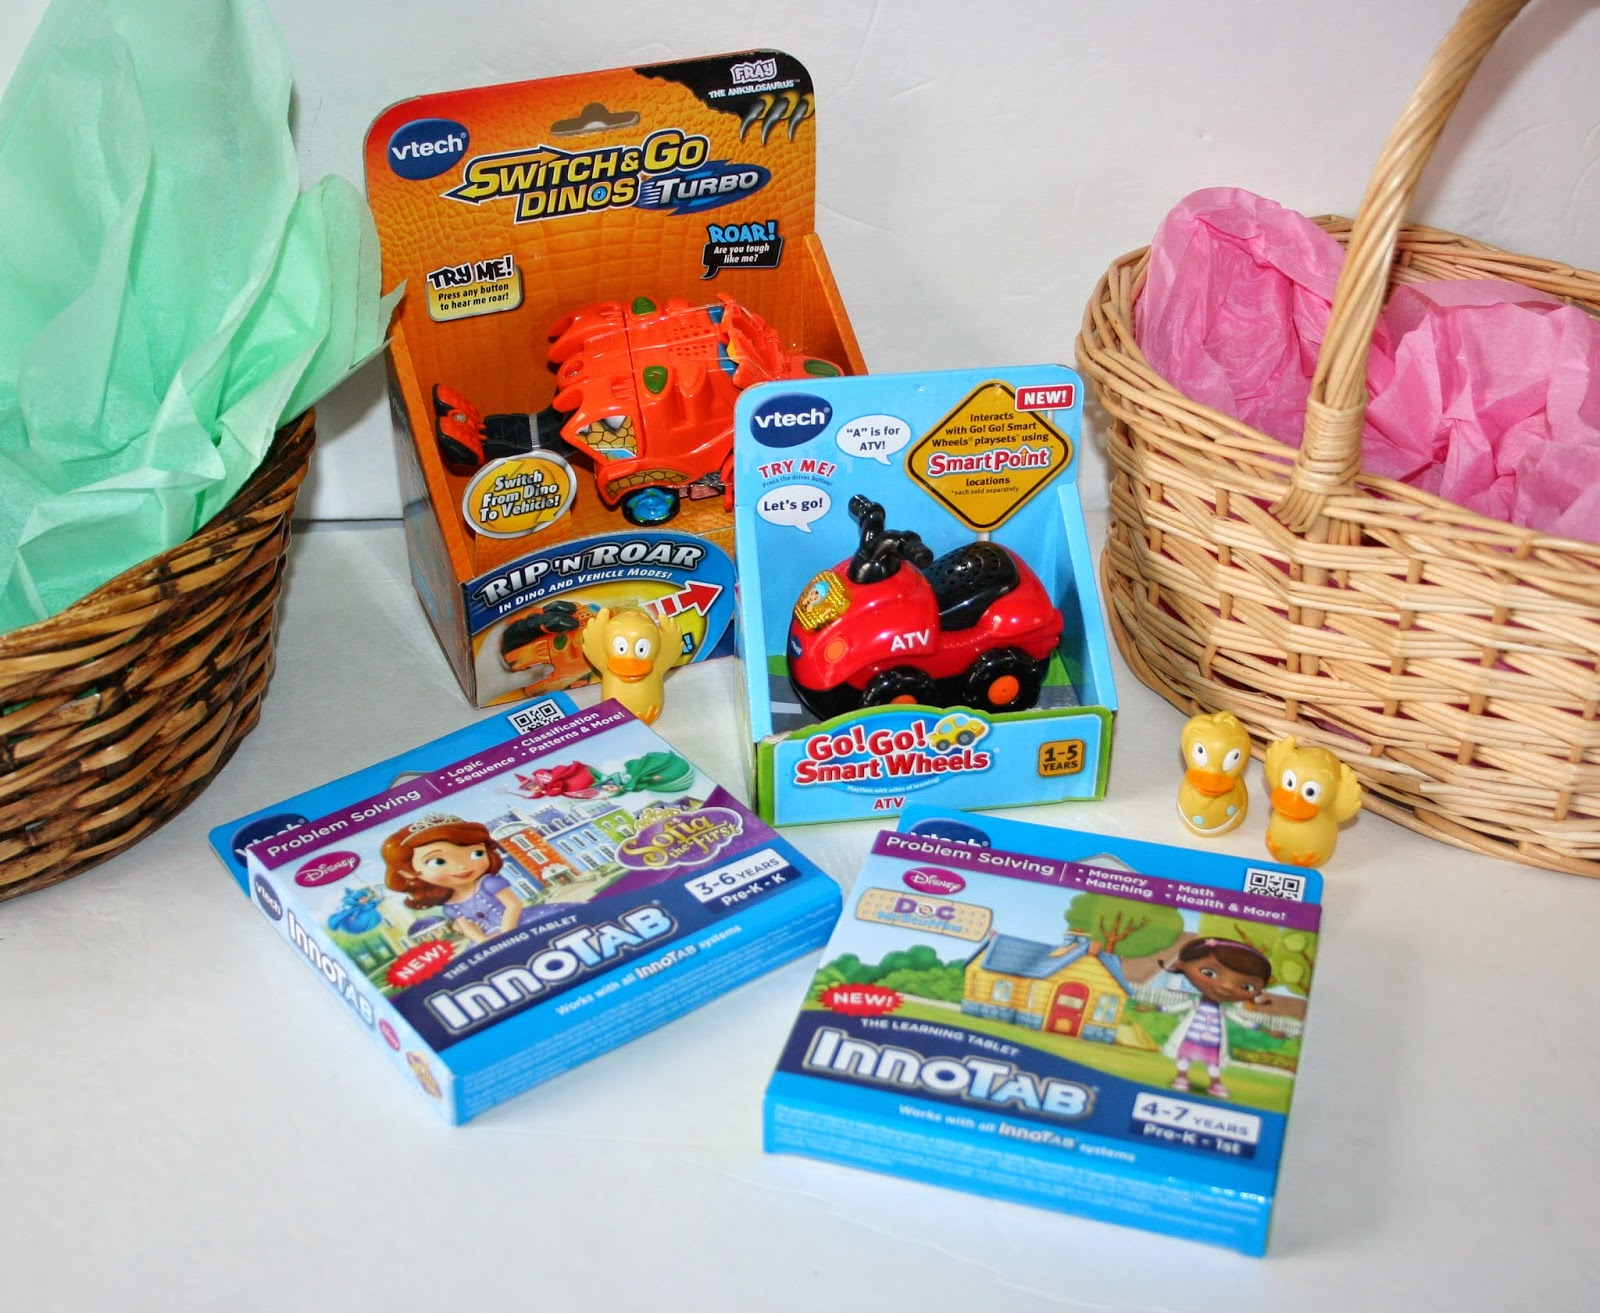 Our country road v tech toy tastic easter basket review and v tech toys offers a number of great gift ideas for children of all ages and im going to highlight a few of them negle Image collections